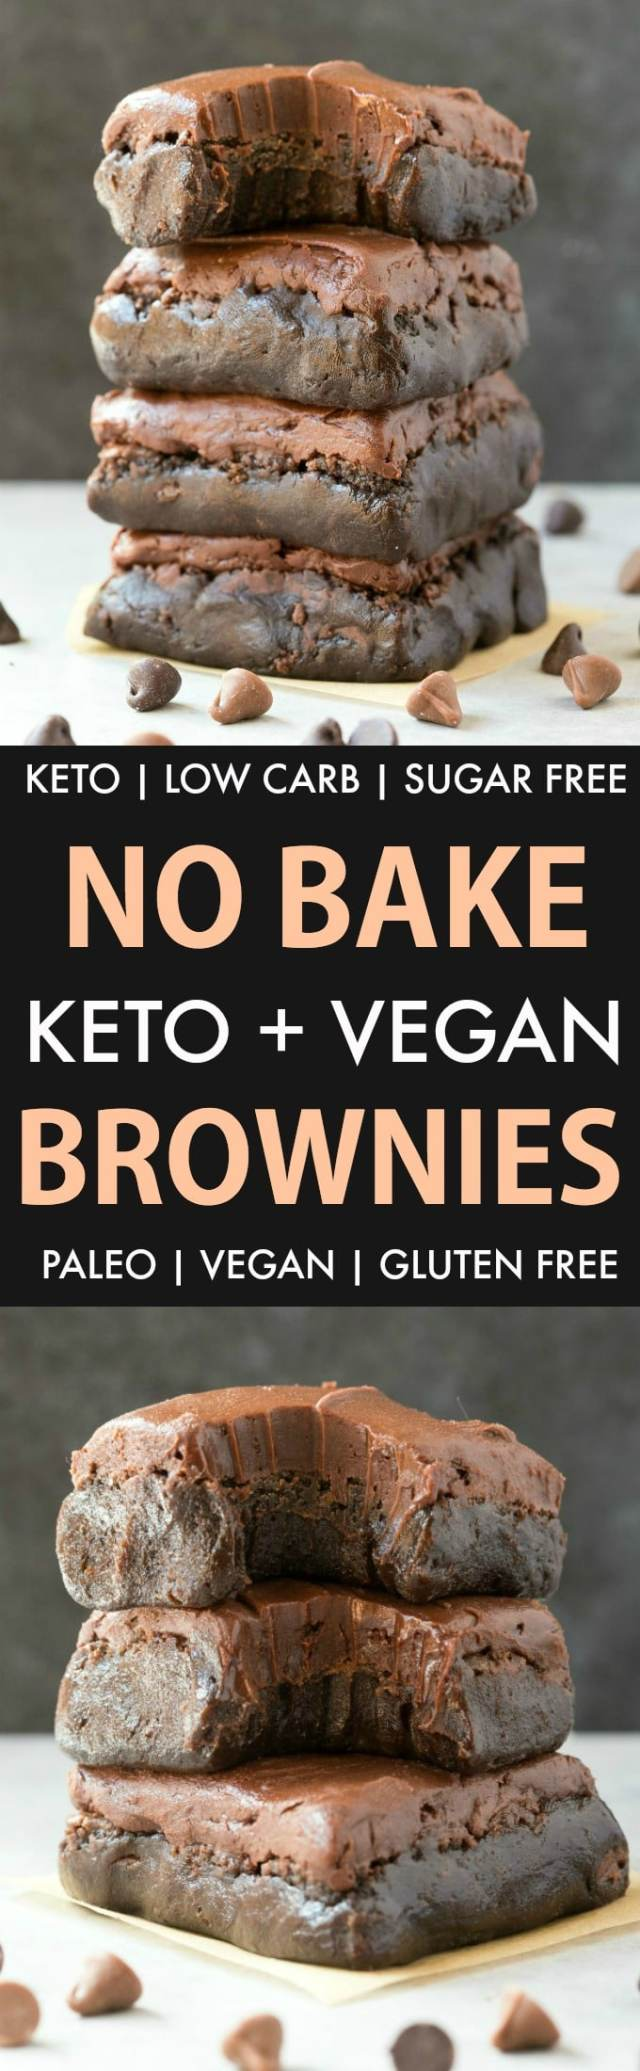 No Bake Paleo Vegan Brownies